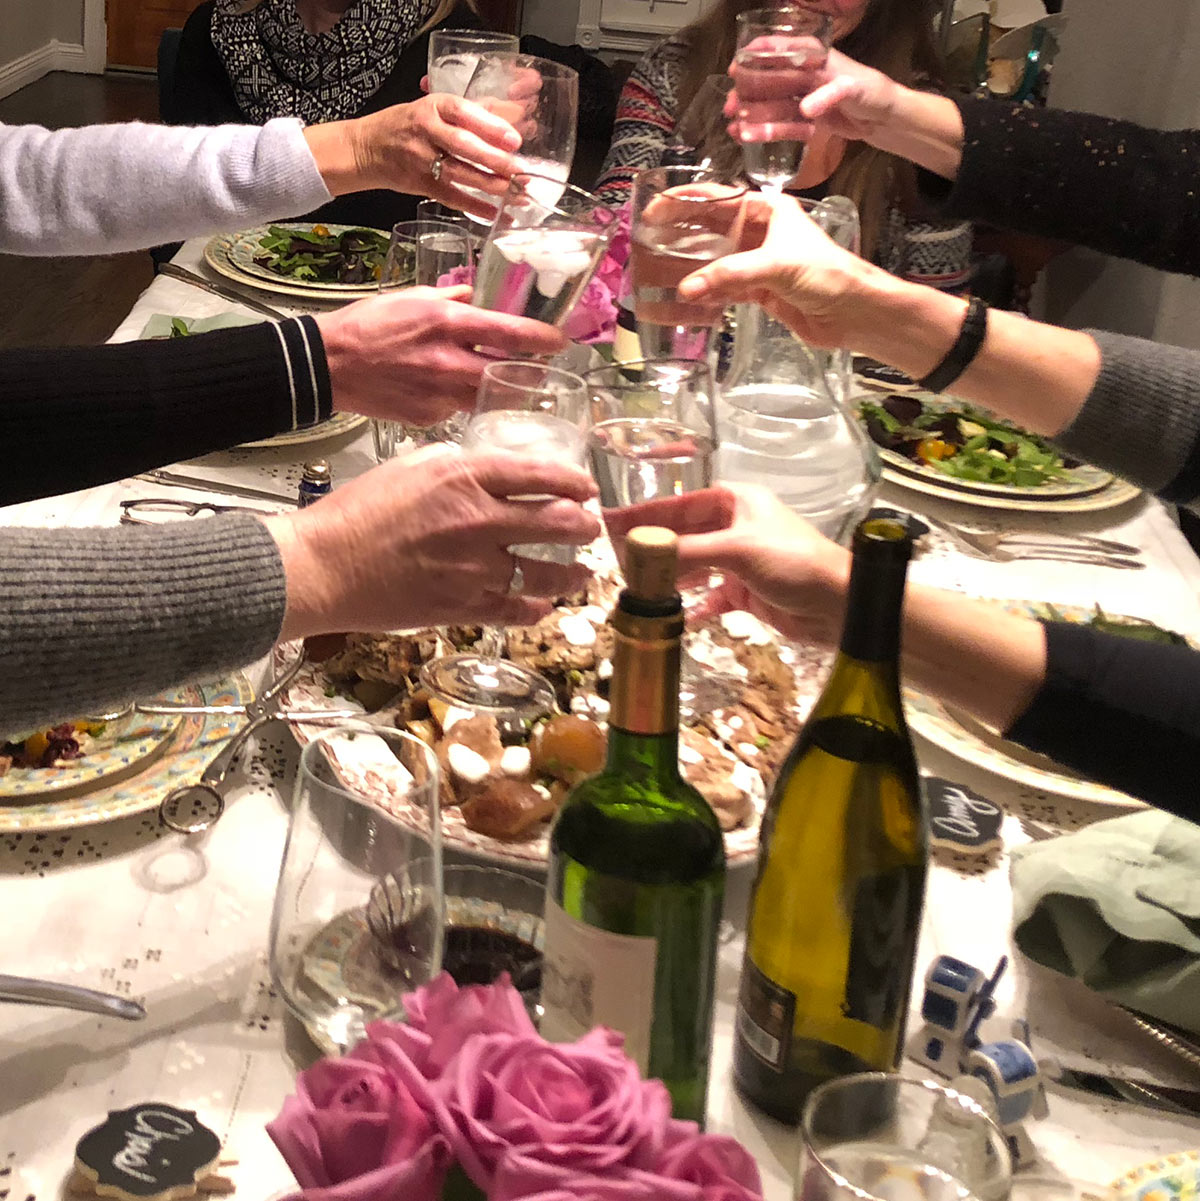 Book club ladies toasting with wine at dinner